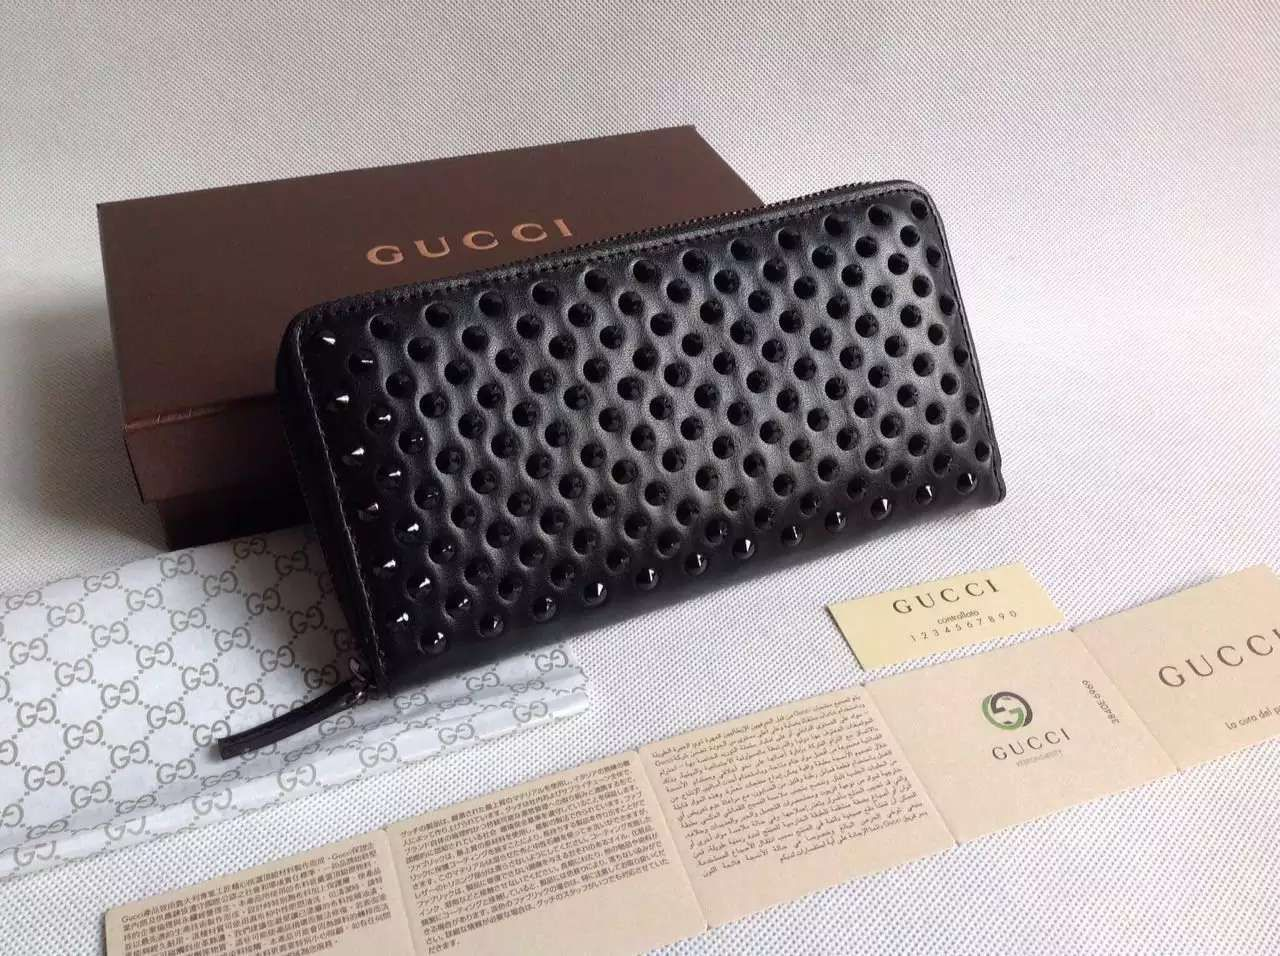 gucci Wallet, ID : 22892(FORSALE:a@yybags.com), gucci an, gucci full site, gucci cheap backpacks for girls, gucci offical website, gucci business, where did gucci start, gucci good backpacks, on sale gucci bags, gucci official website, designer of gucci, gucci womens backpack, online gucci store, gucci women s briefcases #gucciWallet #gucci #gucci #bags #for #sale